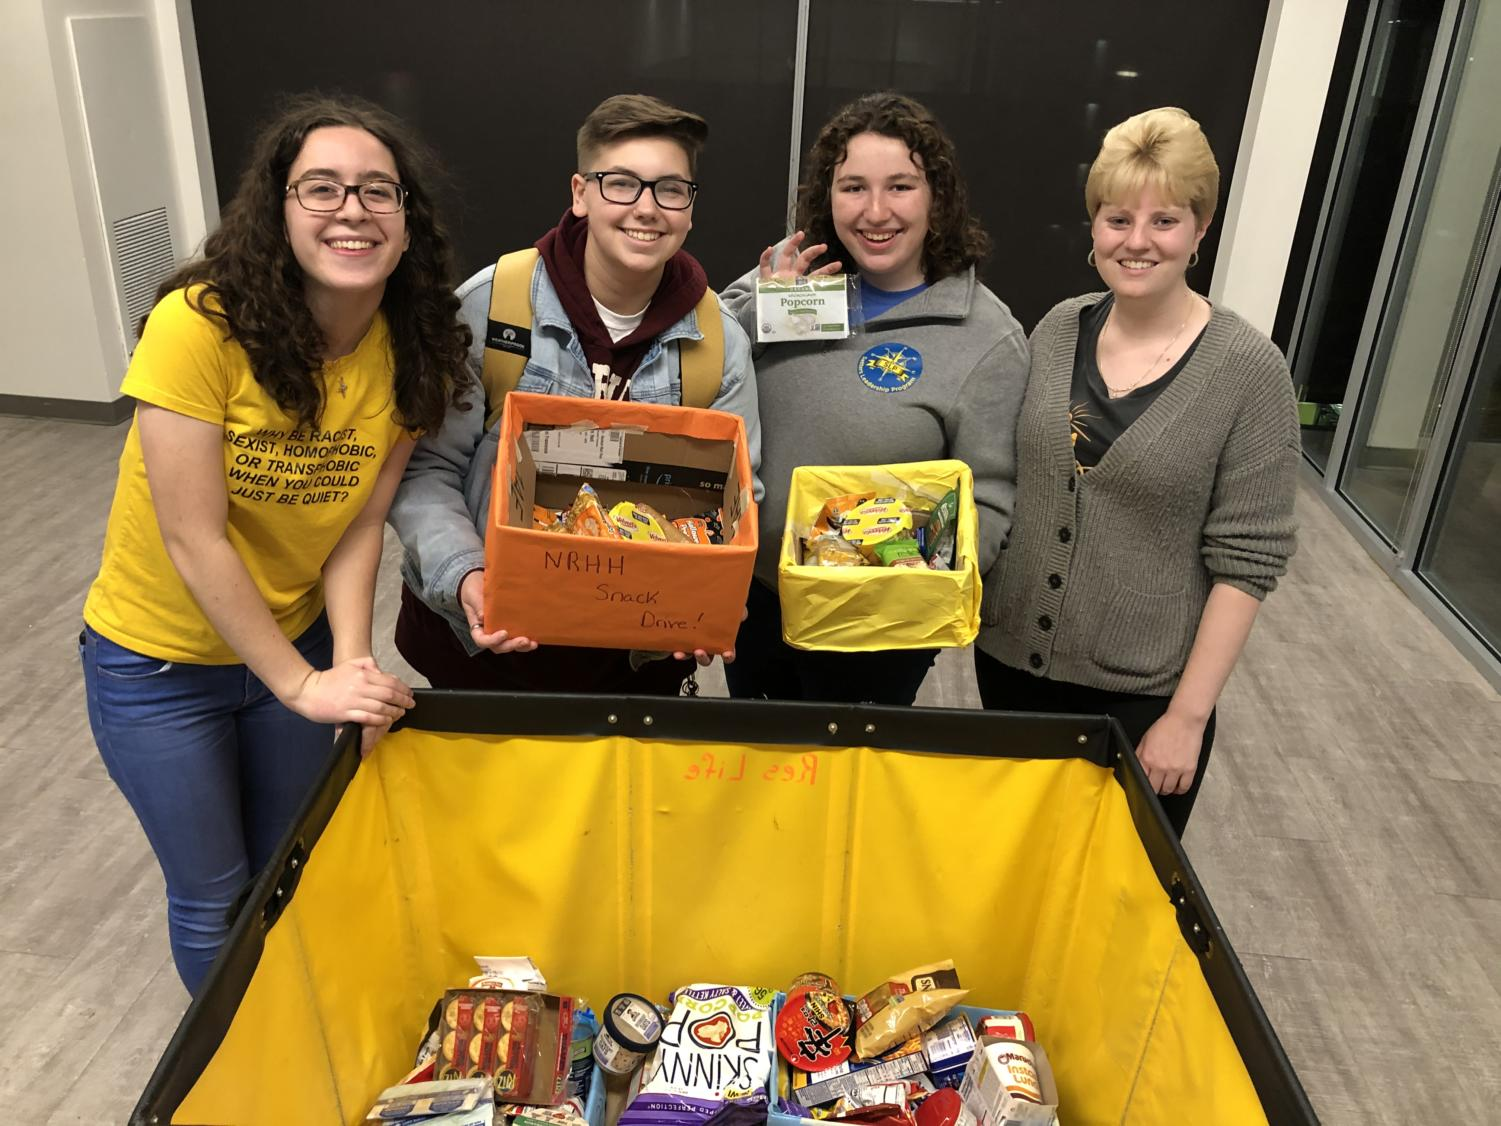 NRHH members collecting food in the residence halls.  The E-board concludes Michael Shannon, Christina Little, Alexander Weiss, Meaghan Rodrigues and  Grainne McGinley.